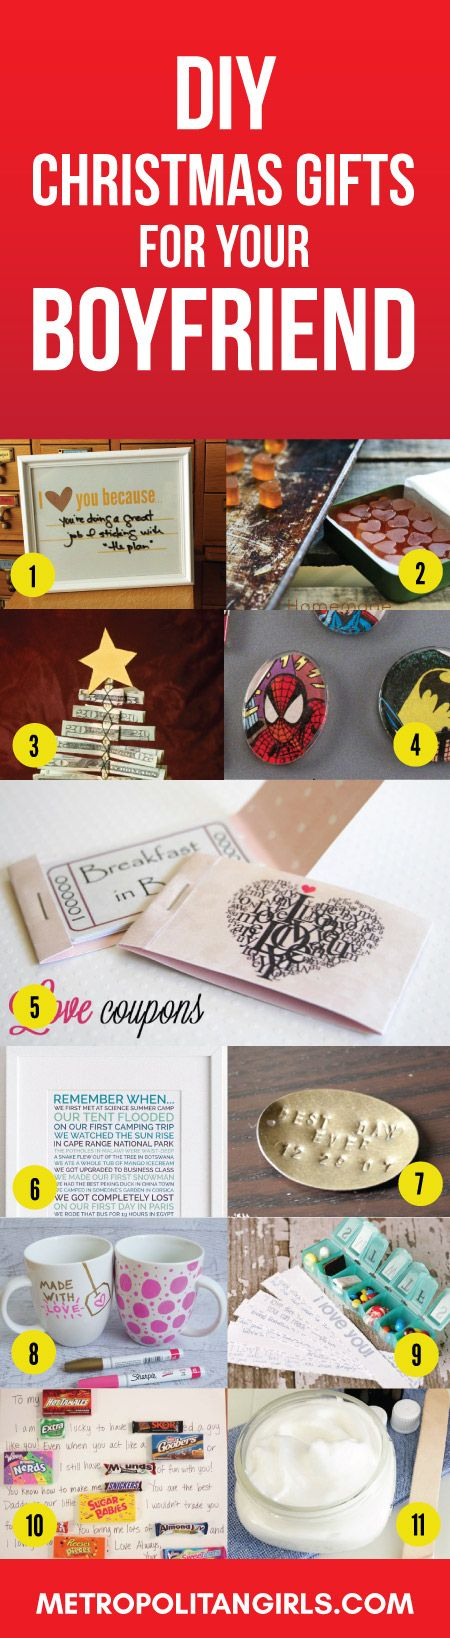 Christmas gift ideas for boyfriend 2017 negle Images